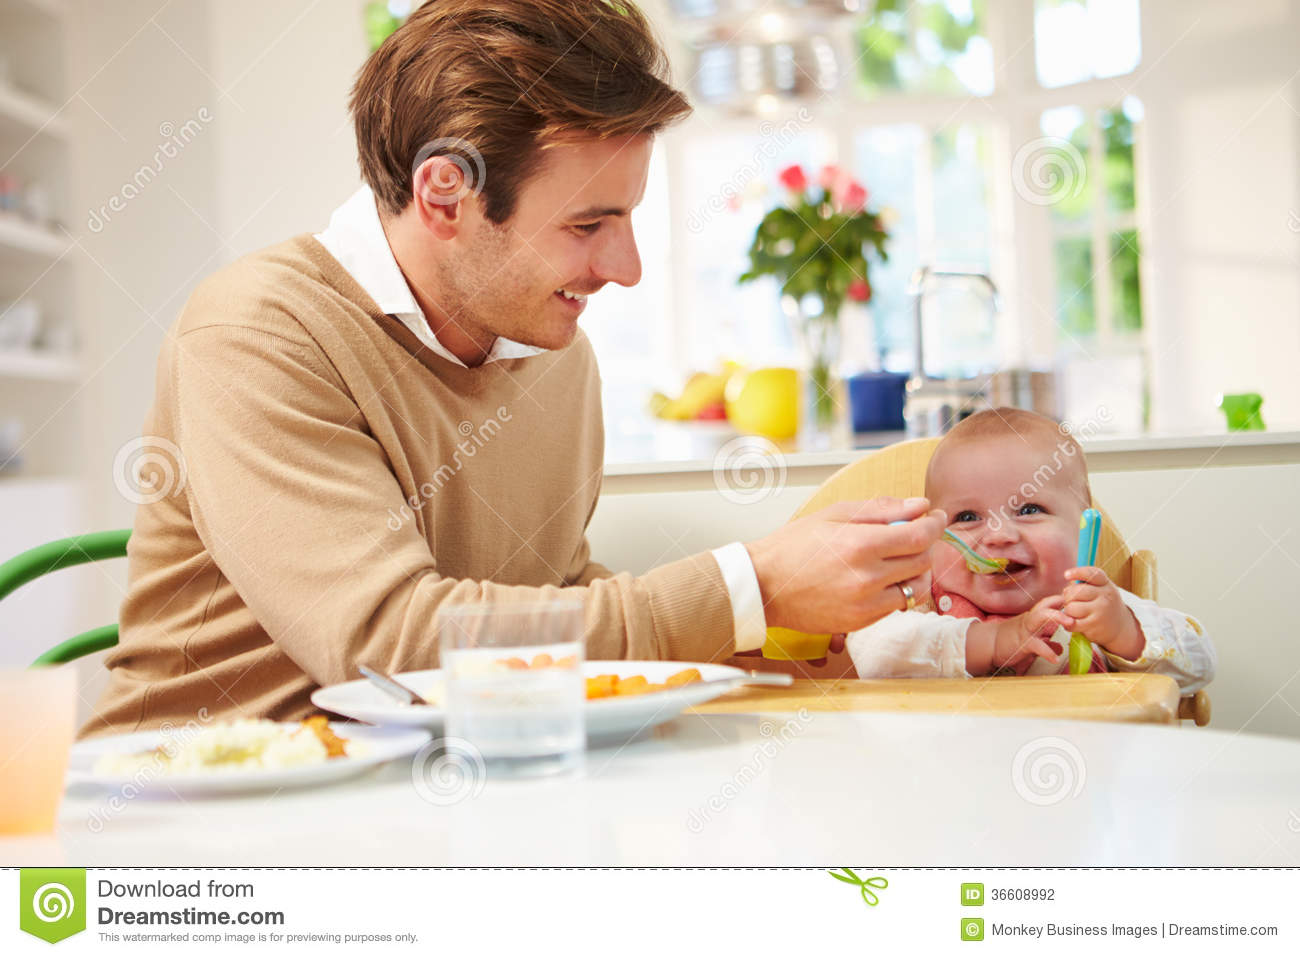 Baby Food Chair Father Feeding Baby Sitting In High Chair At Mealtime